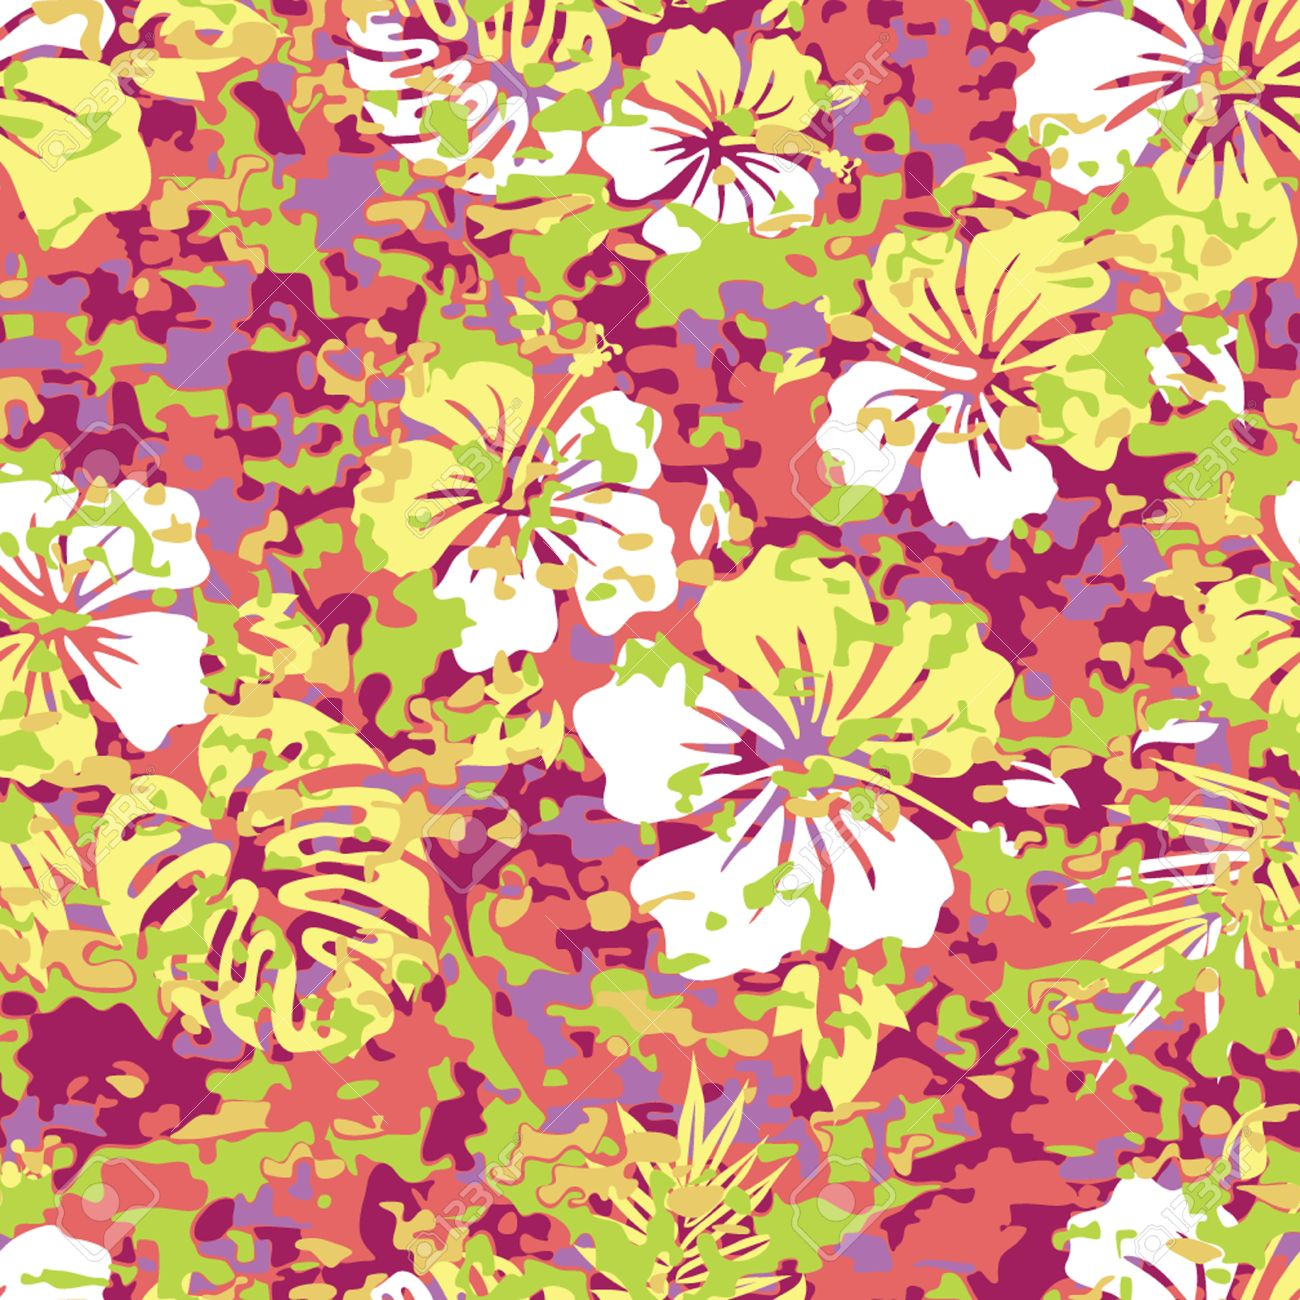 Aloha Hawaiian Shirt Camouflage Seamless Background Pattern Royalty